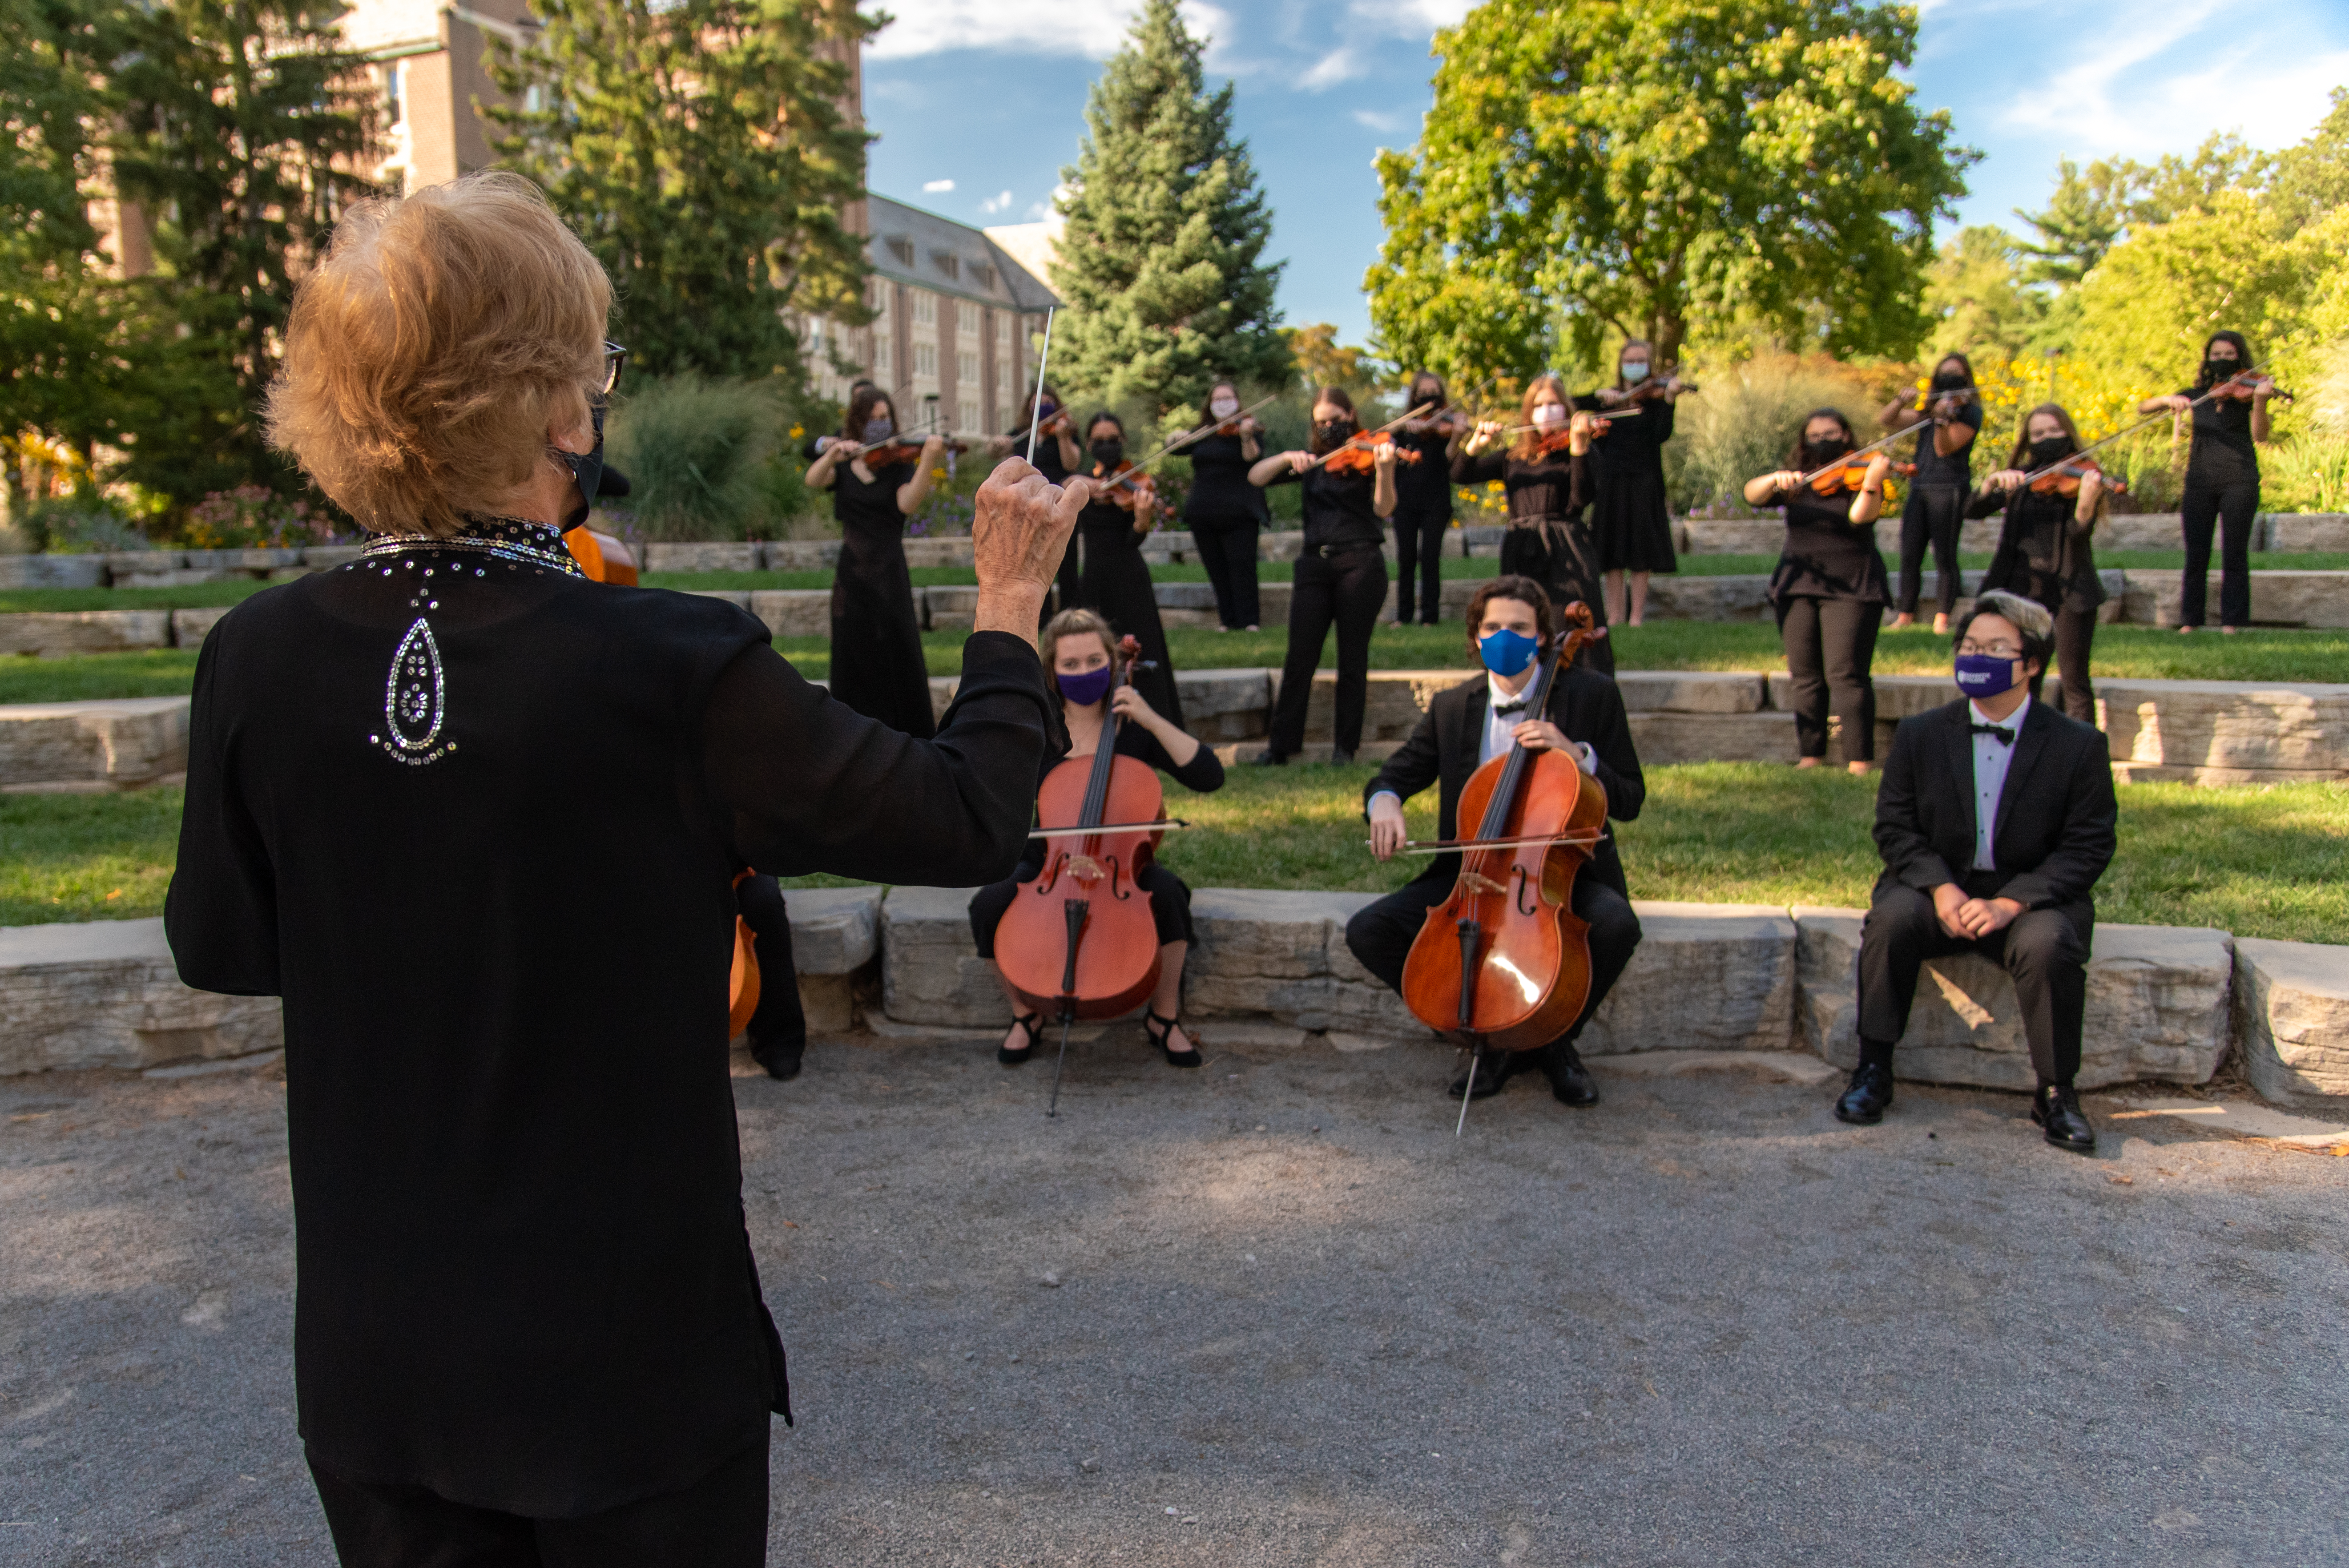 nancy at fountain with orchestra